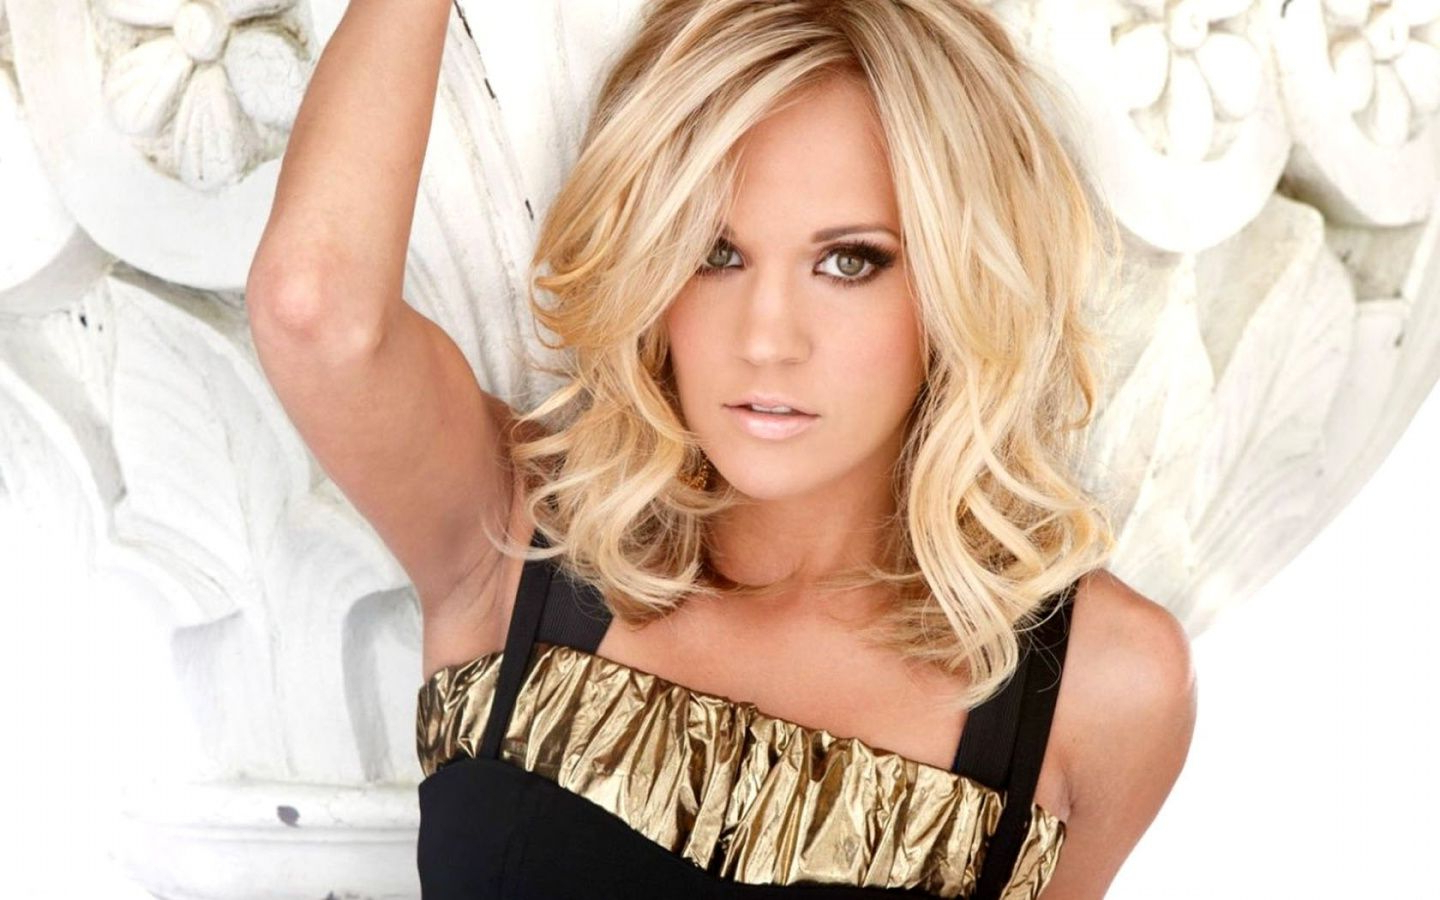 Google Image Result For Http://4.bp.blogspot/-Xwmdkhkqnhk regarding Carrie Underwood Short Hairstyles